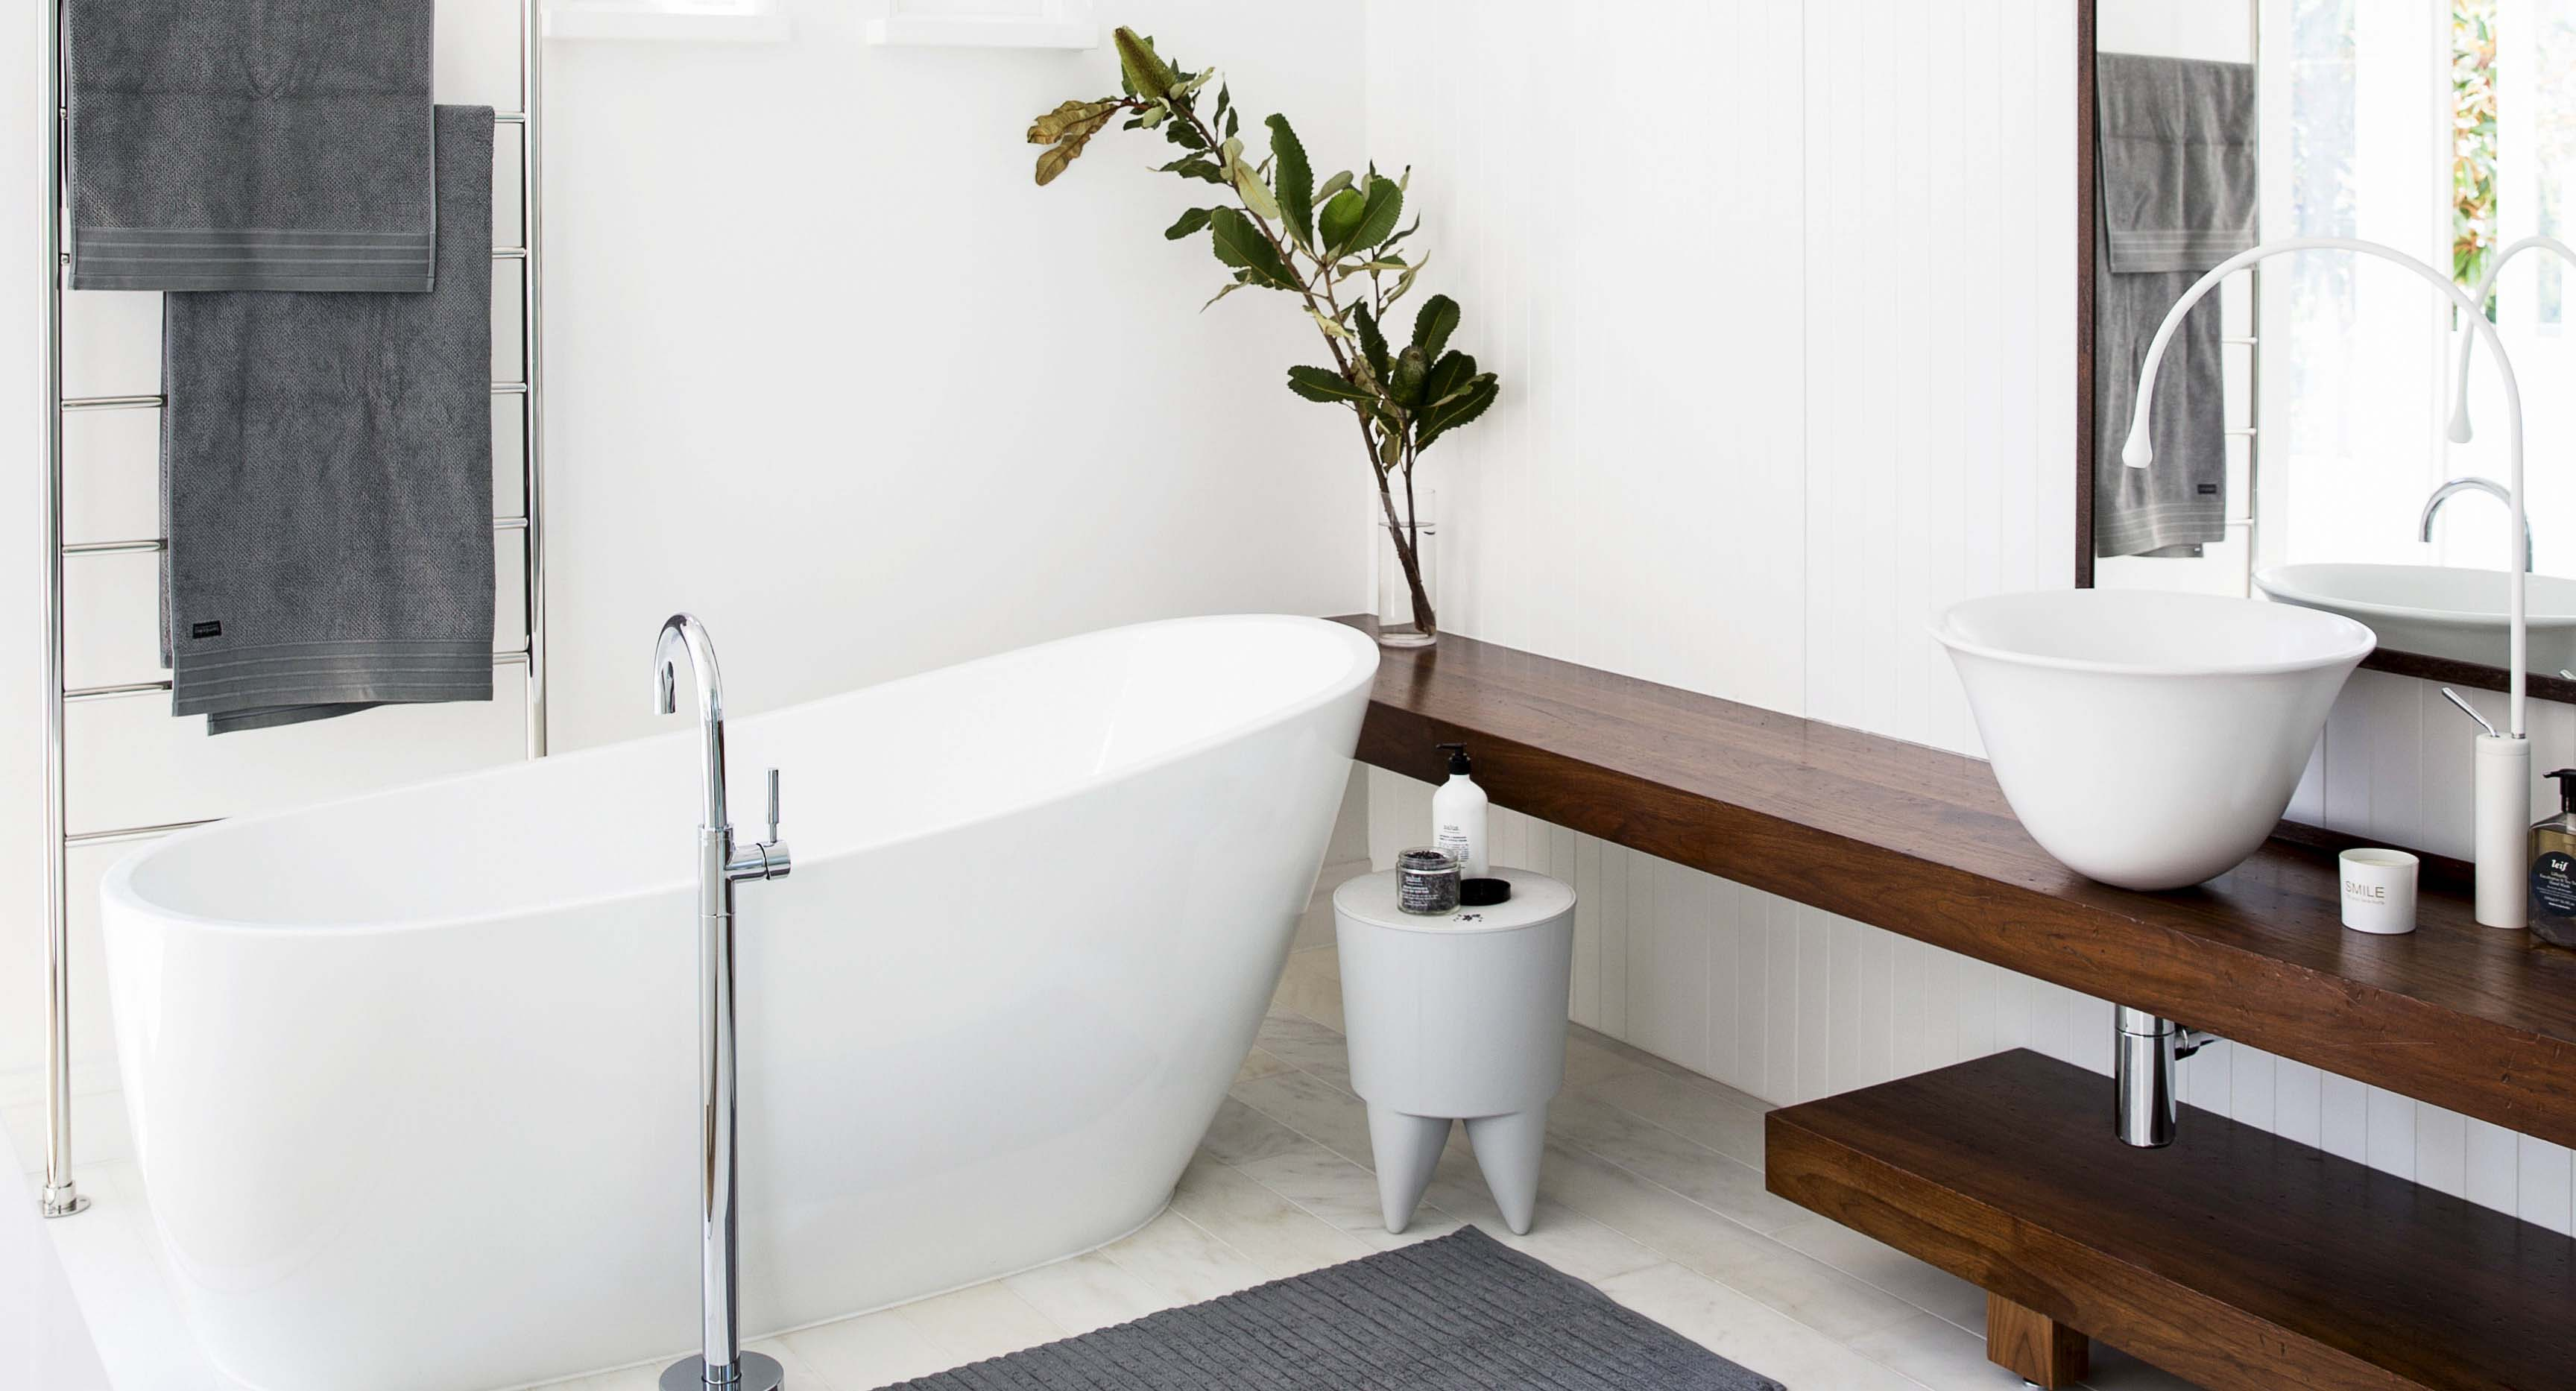 4 luxurious yet simple bathroom styles to inspire your